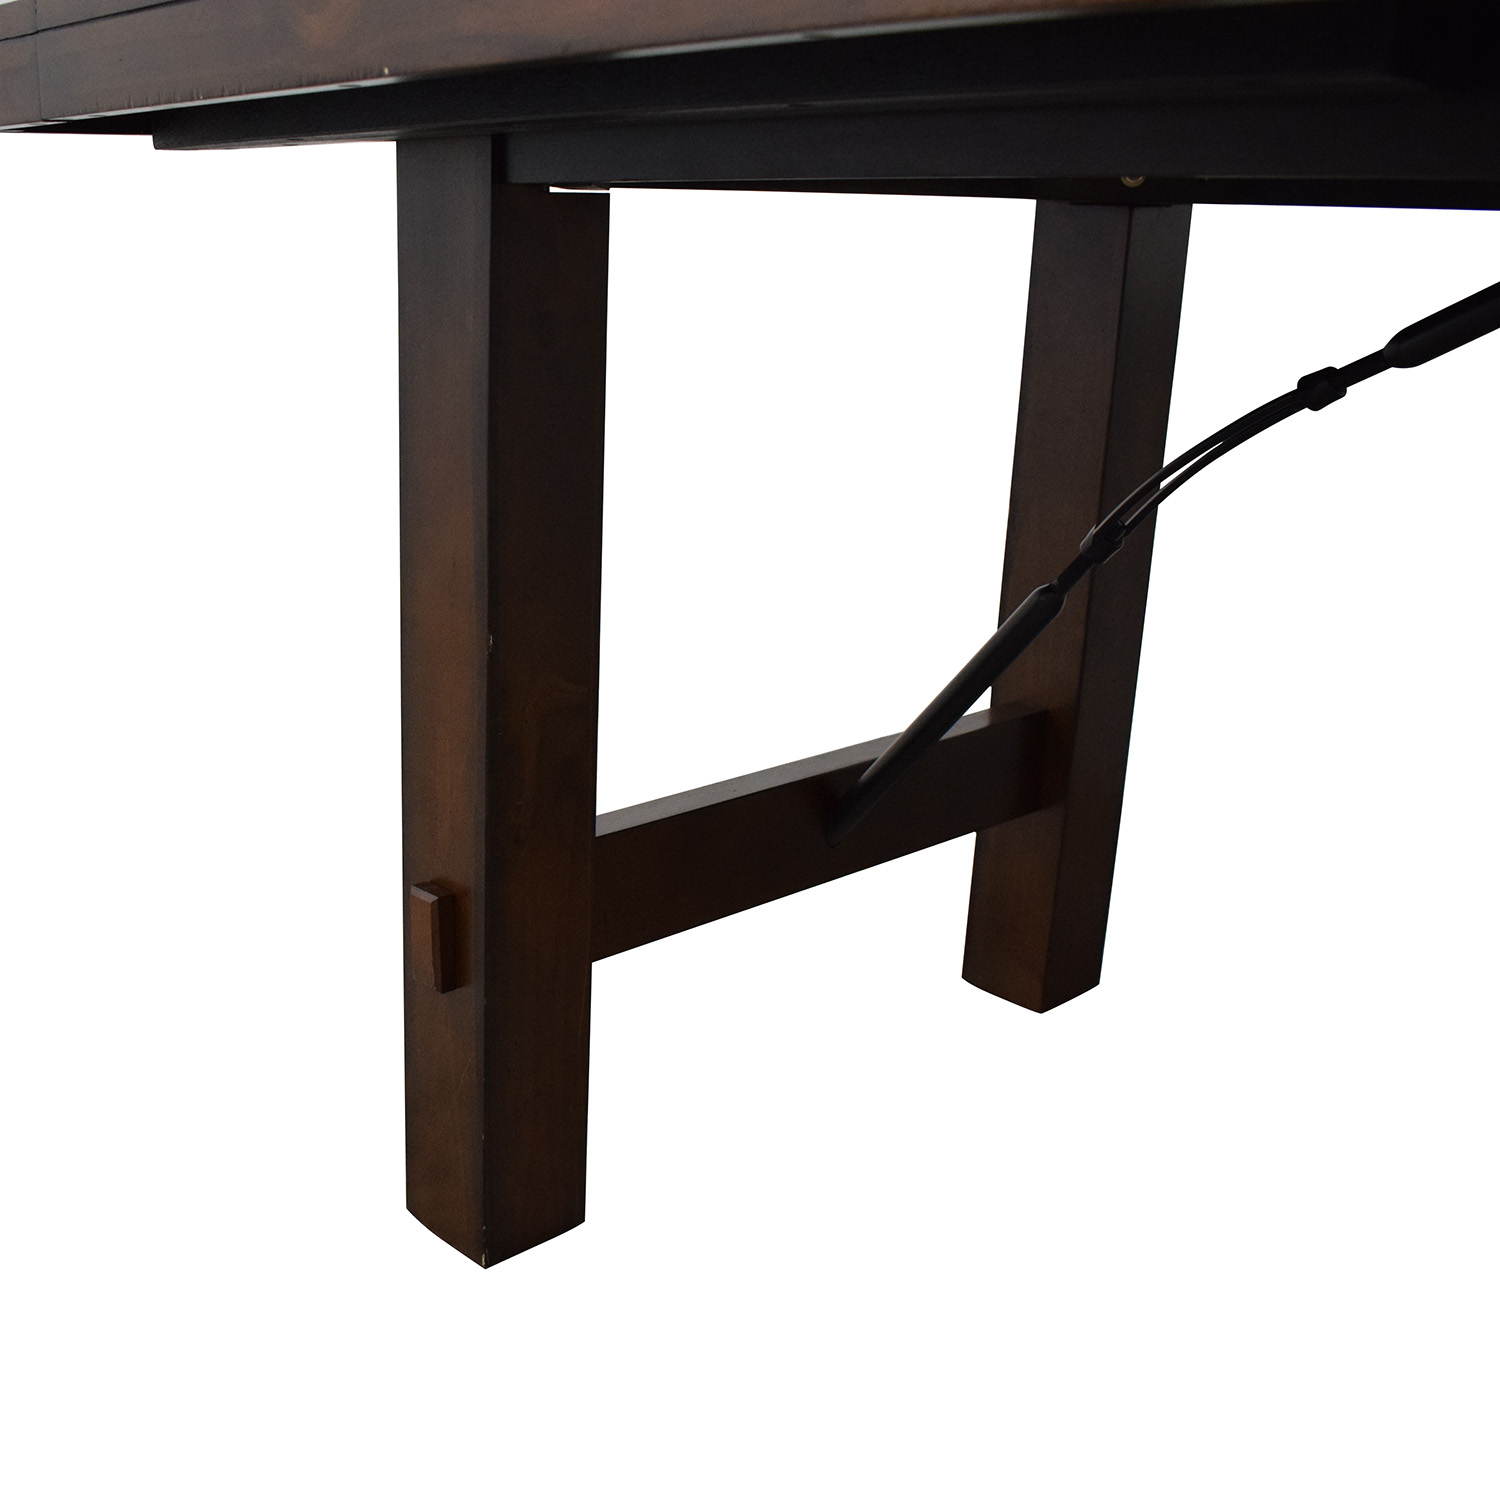 Wayfair Wayfair Dining Room Table dimensions